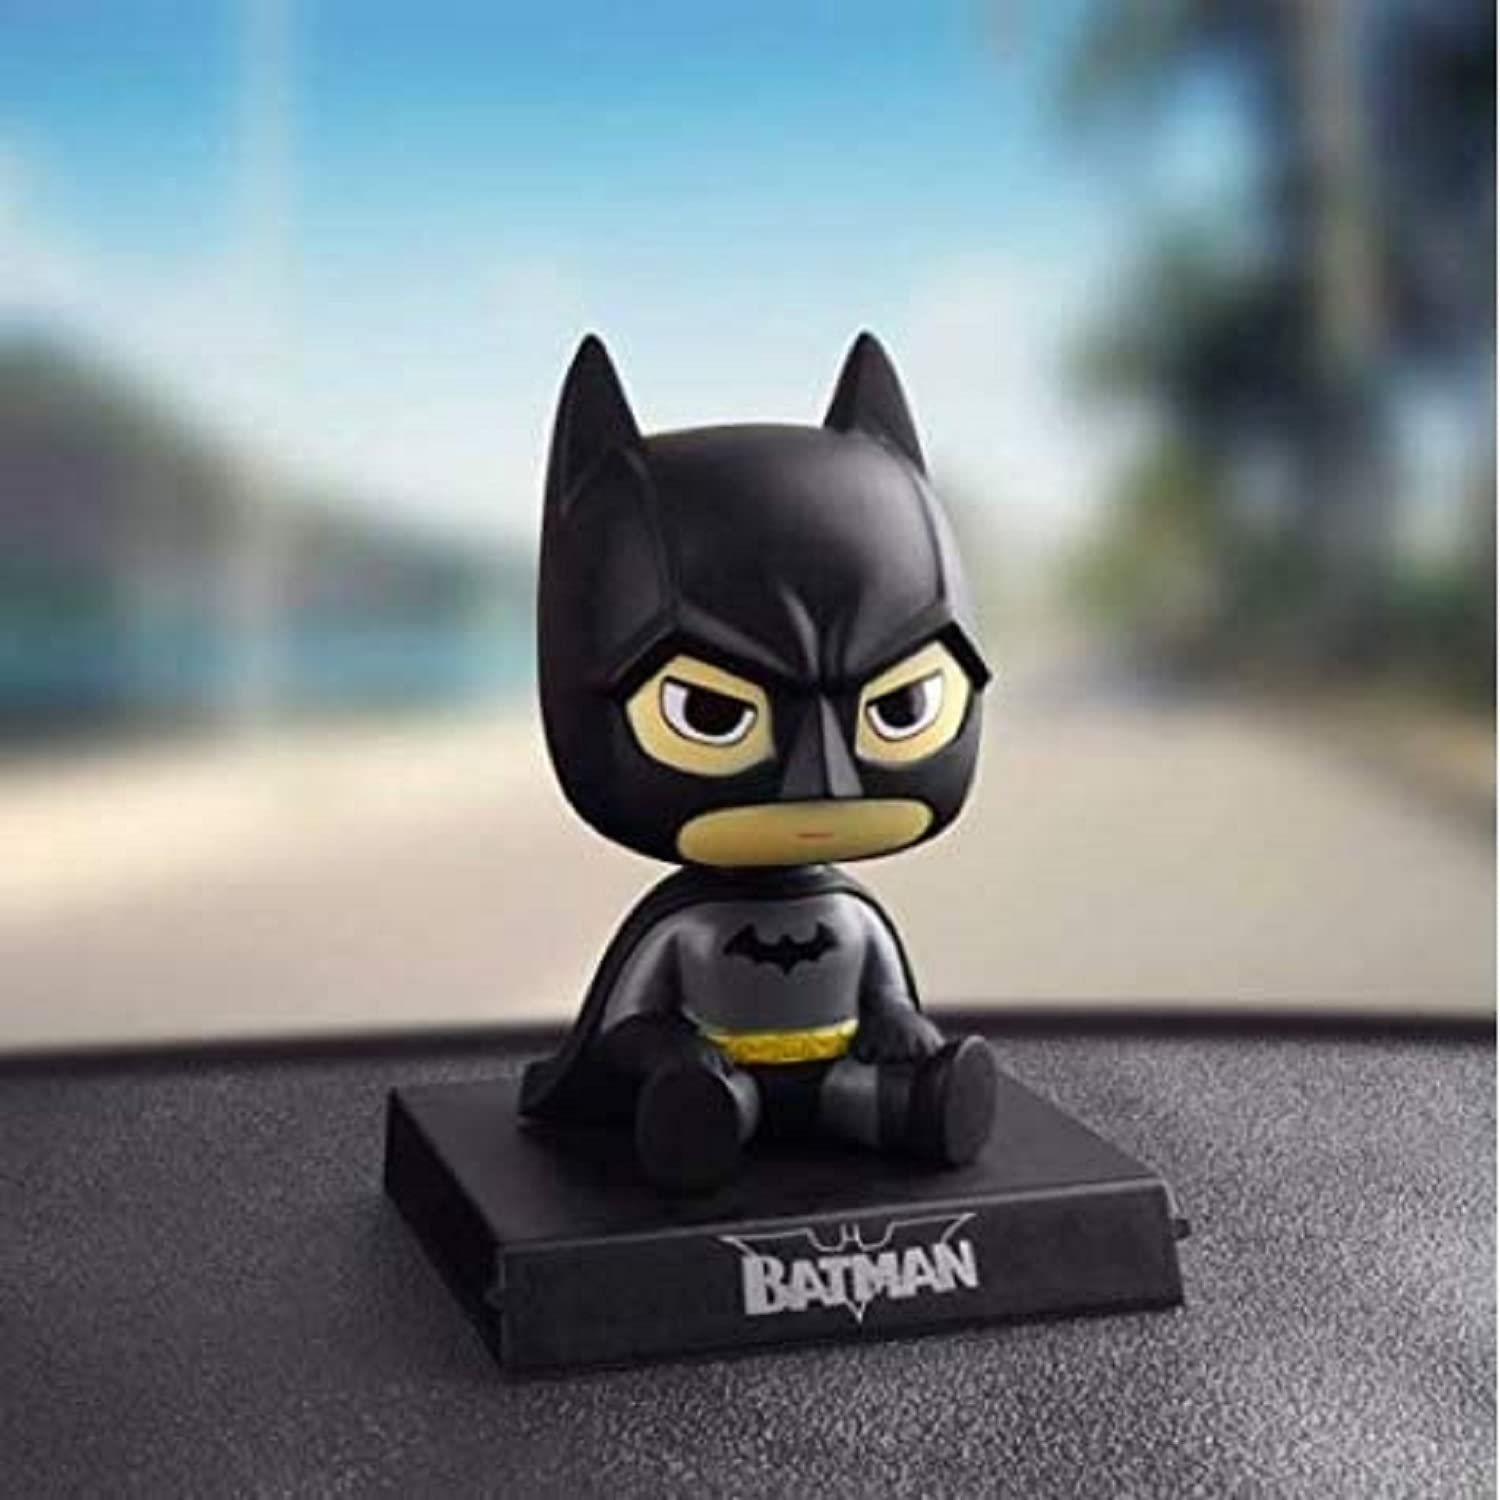 AUGEN Super Hero Batman Action Figure Limited Edition Bobblehead with Mobile Holder for Car Dashboard, Office Desk & Study Table (Pack of 1)